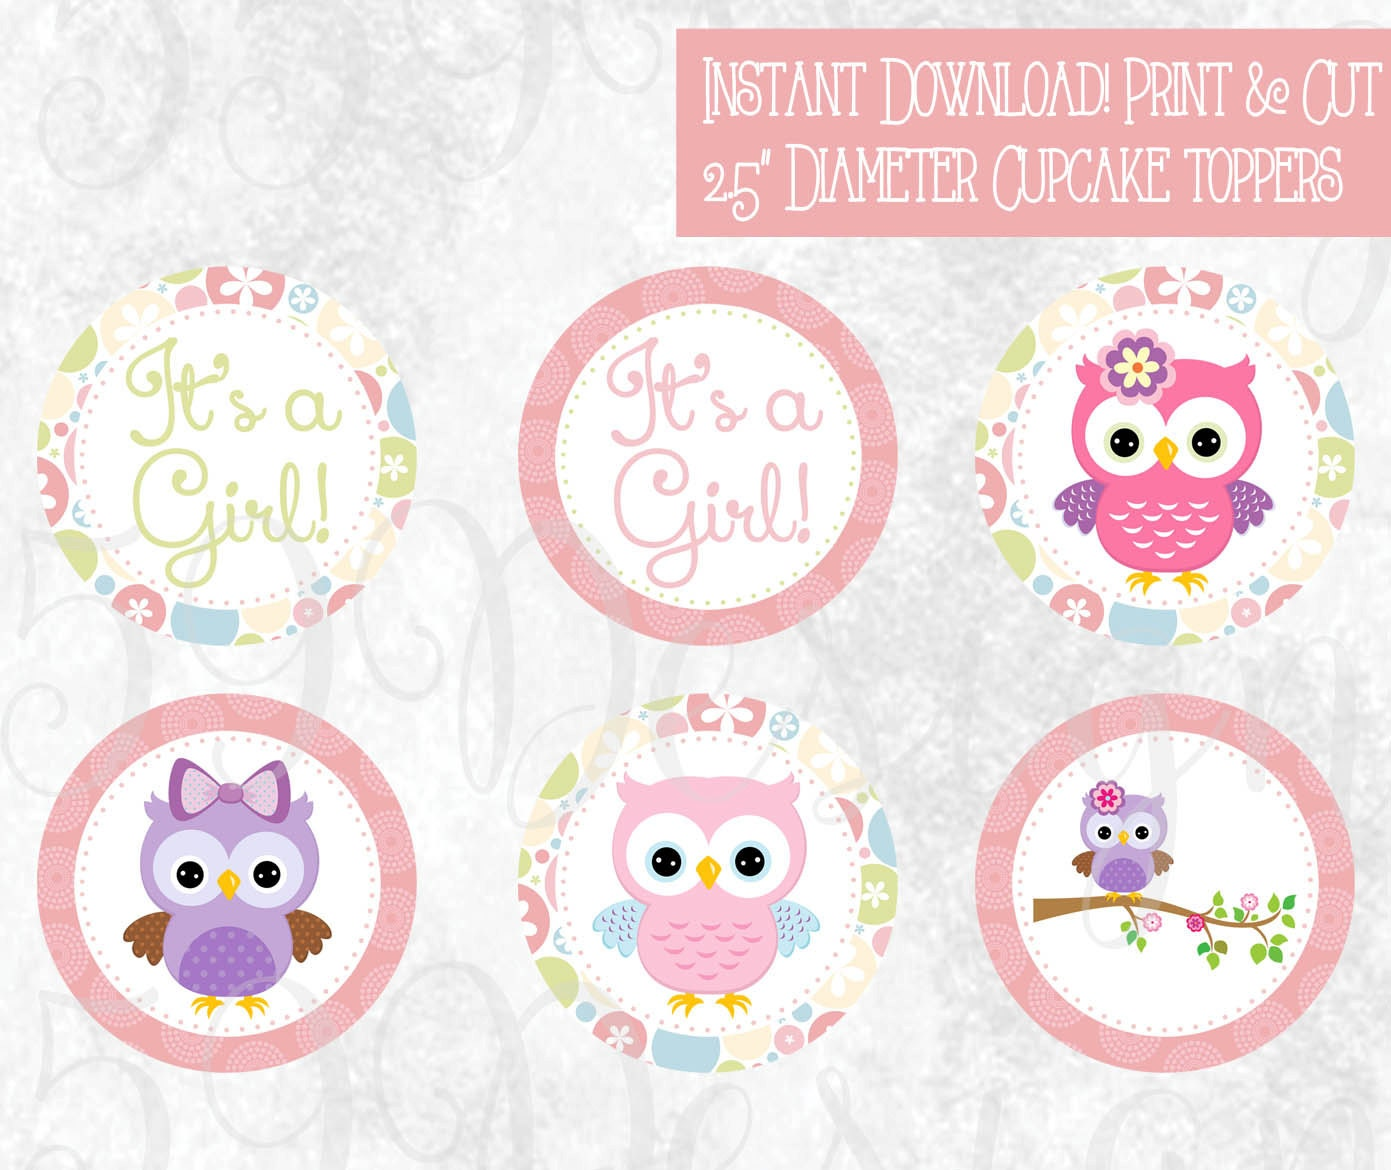 Owl Cupcakes For Baby Shower: Printable Owl Cupcake Toppers Download Print It's A Girl